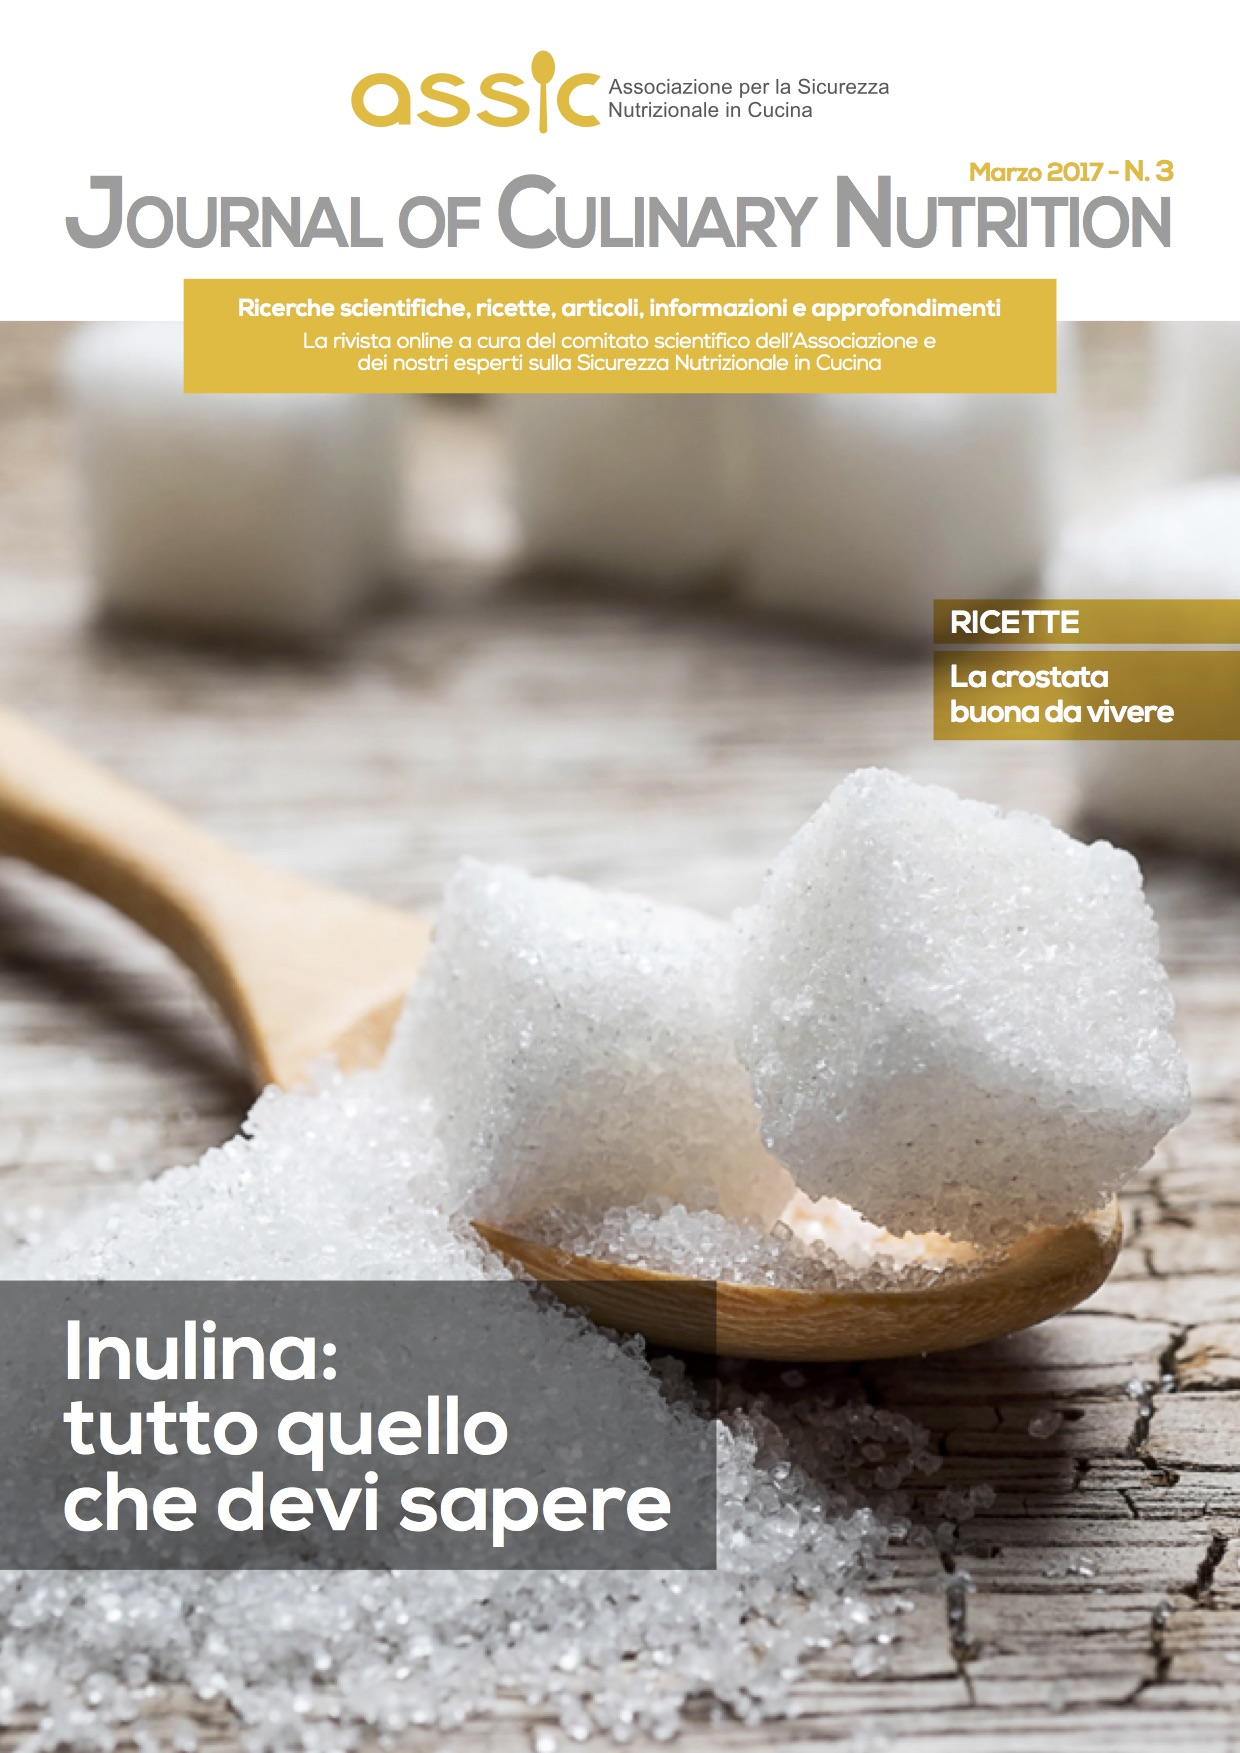 Journal of Culinary Nutrition- Numero 3- Marzo 2017 copia